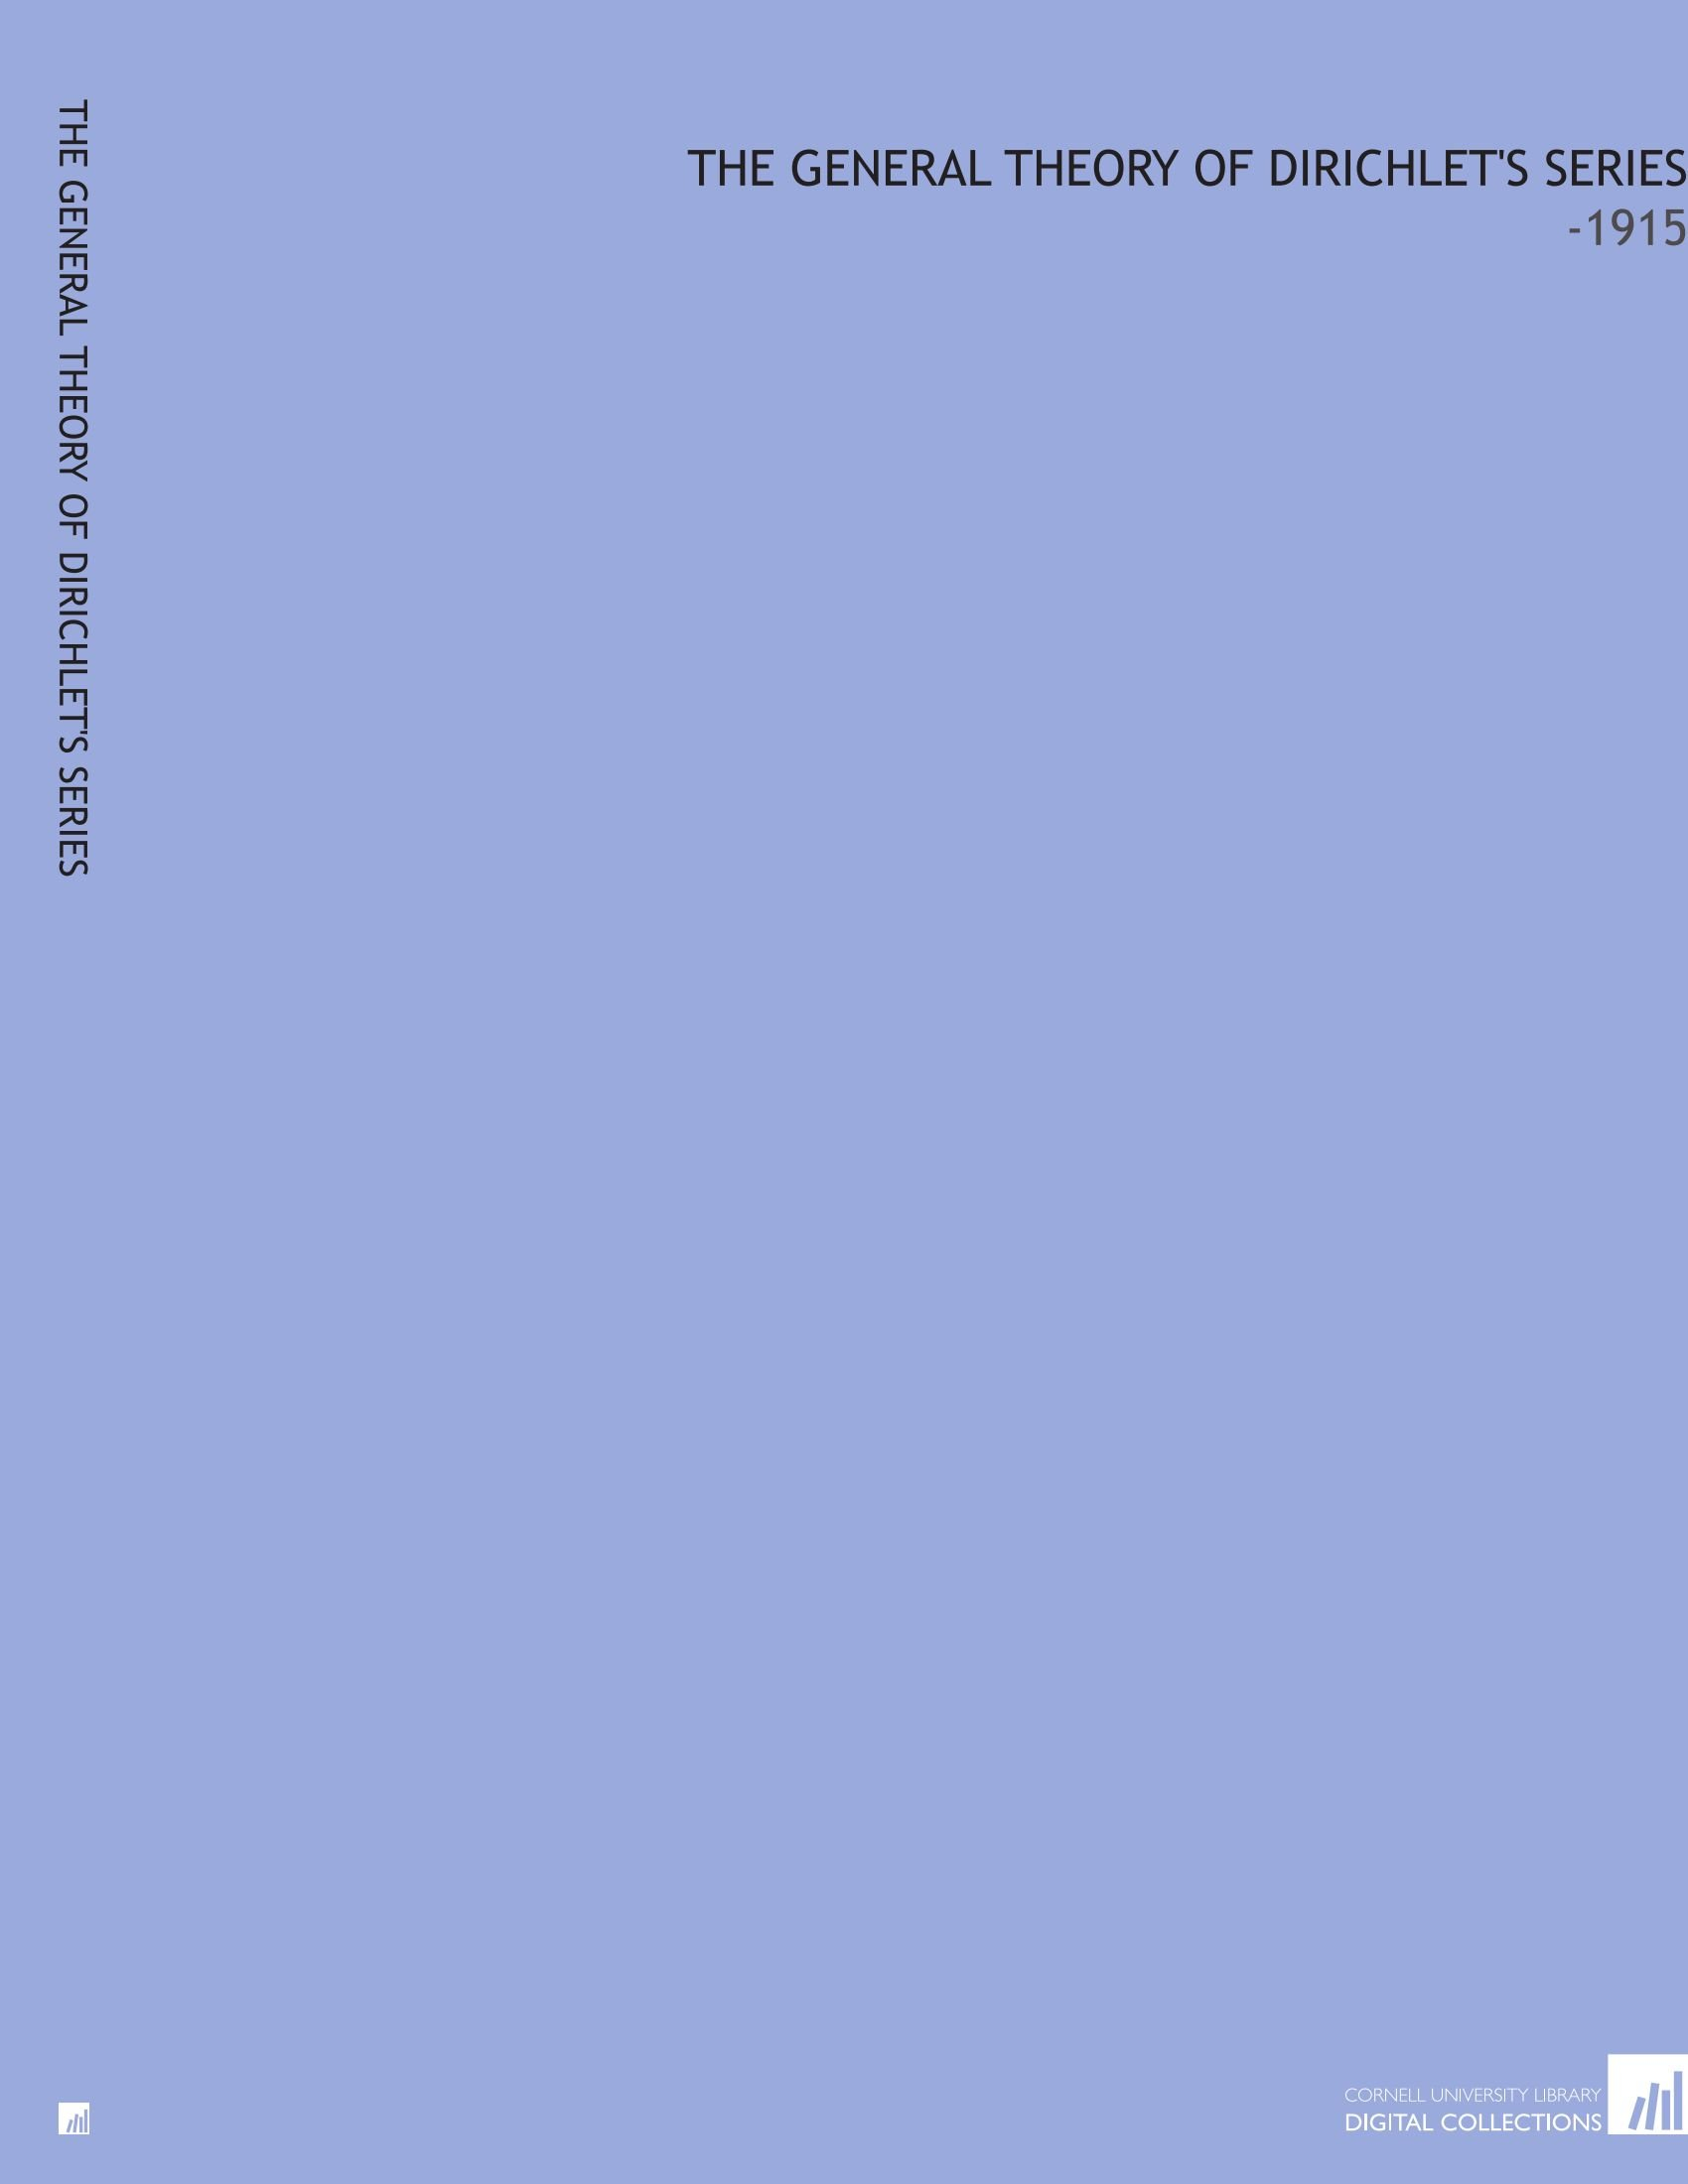 Download The General Theory of Dirichlet's Series: -1915 PDF